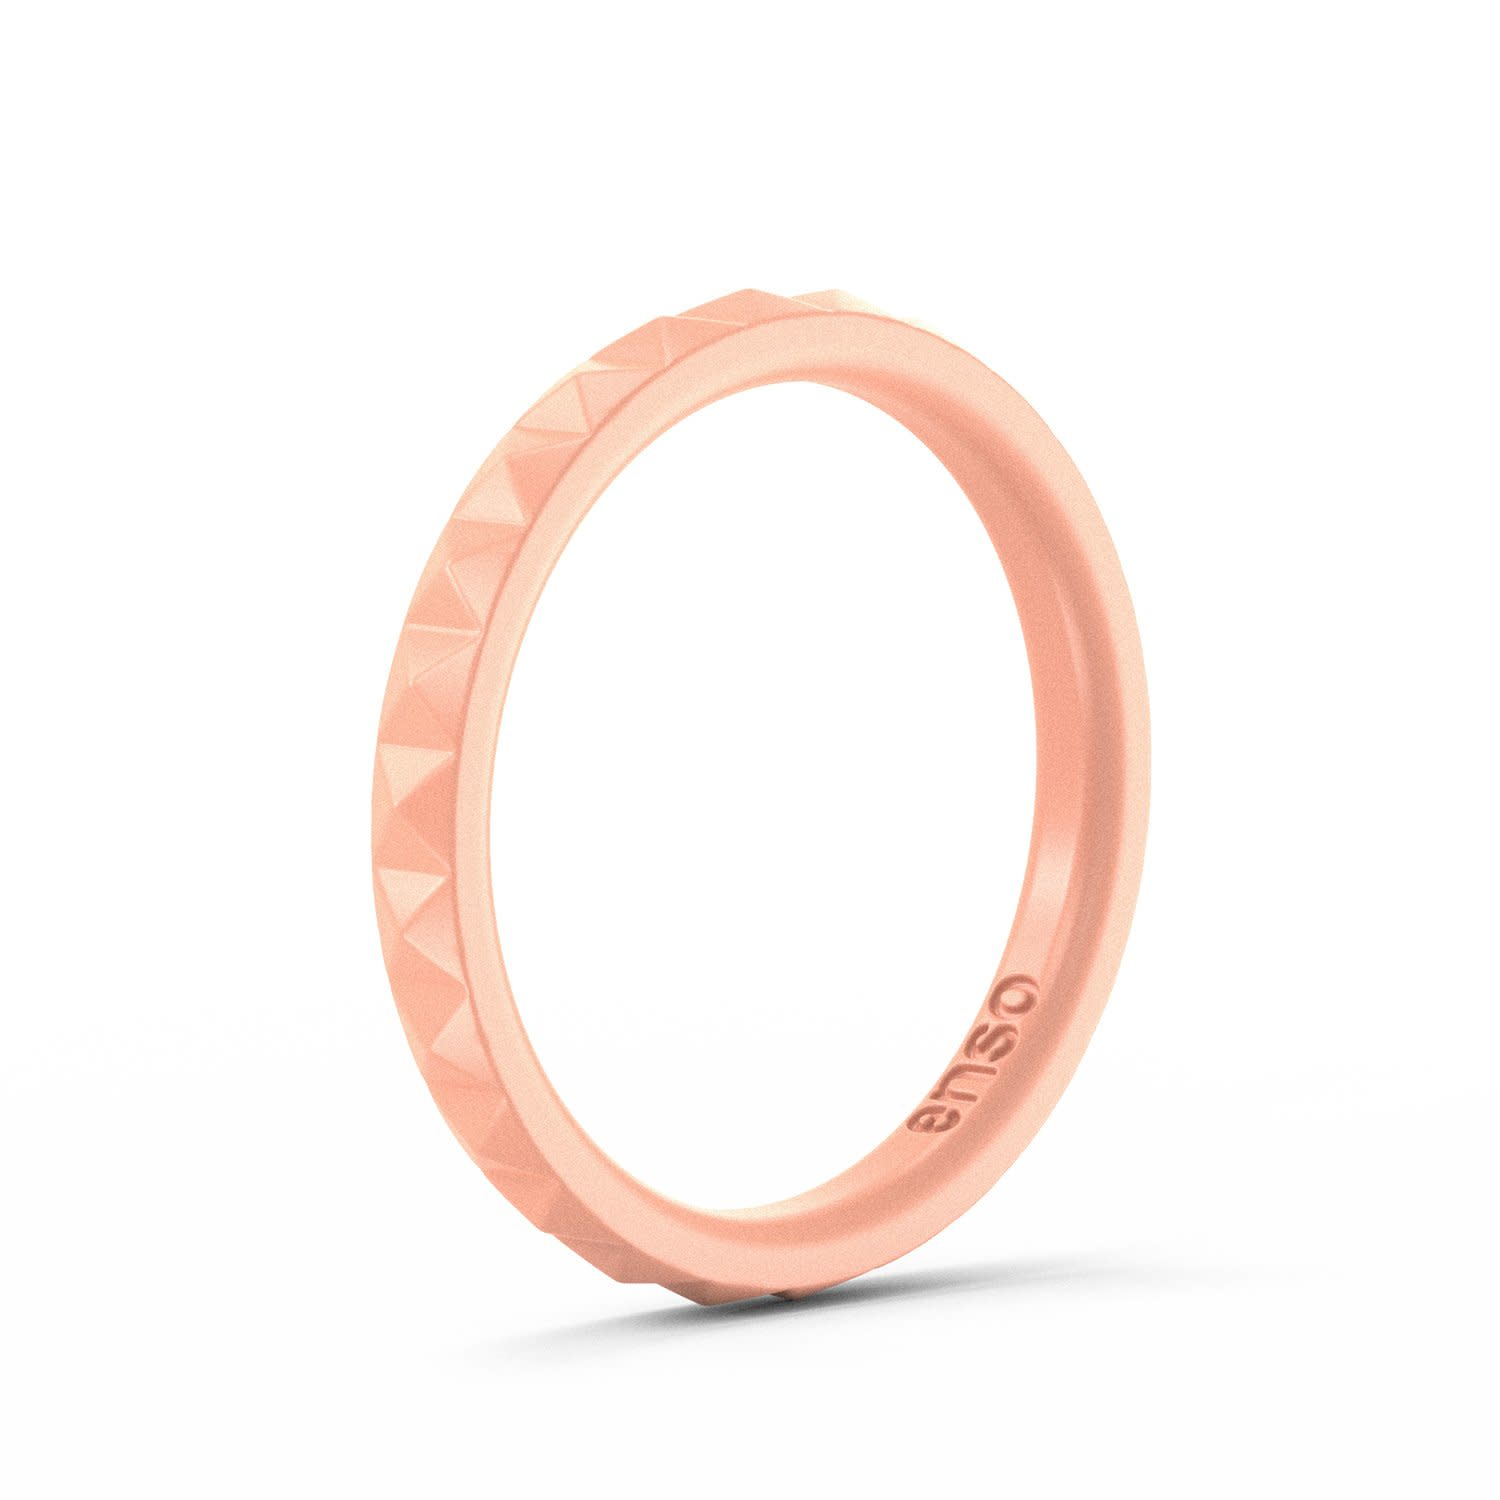 a new top silicone post blog york rings are wirecutter reviews what by times